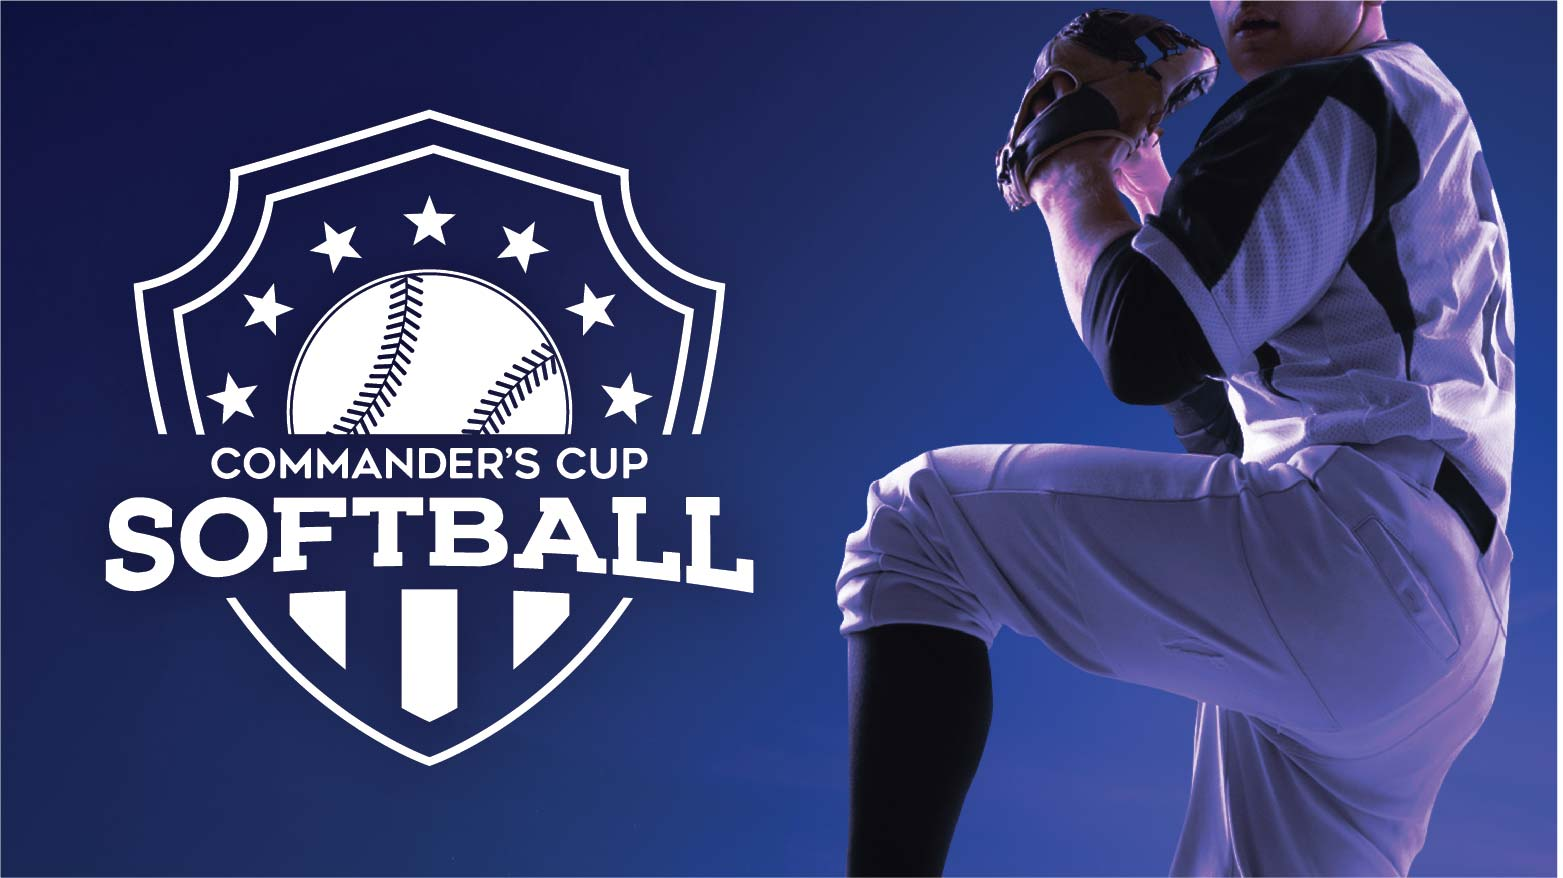 2020 Commander's Cup Softball League/Tournament